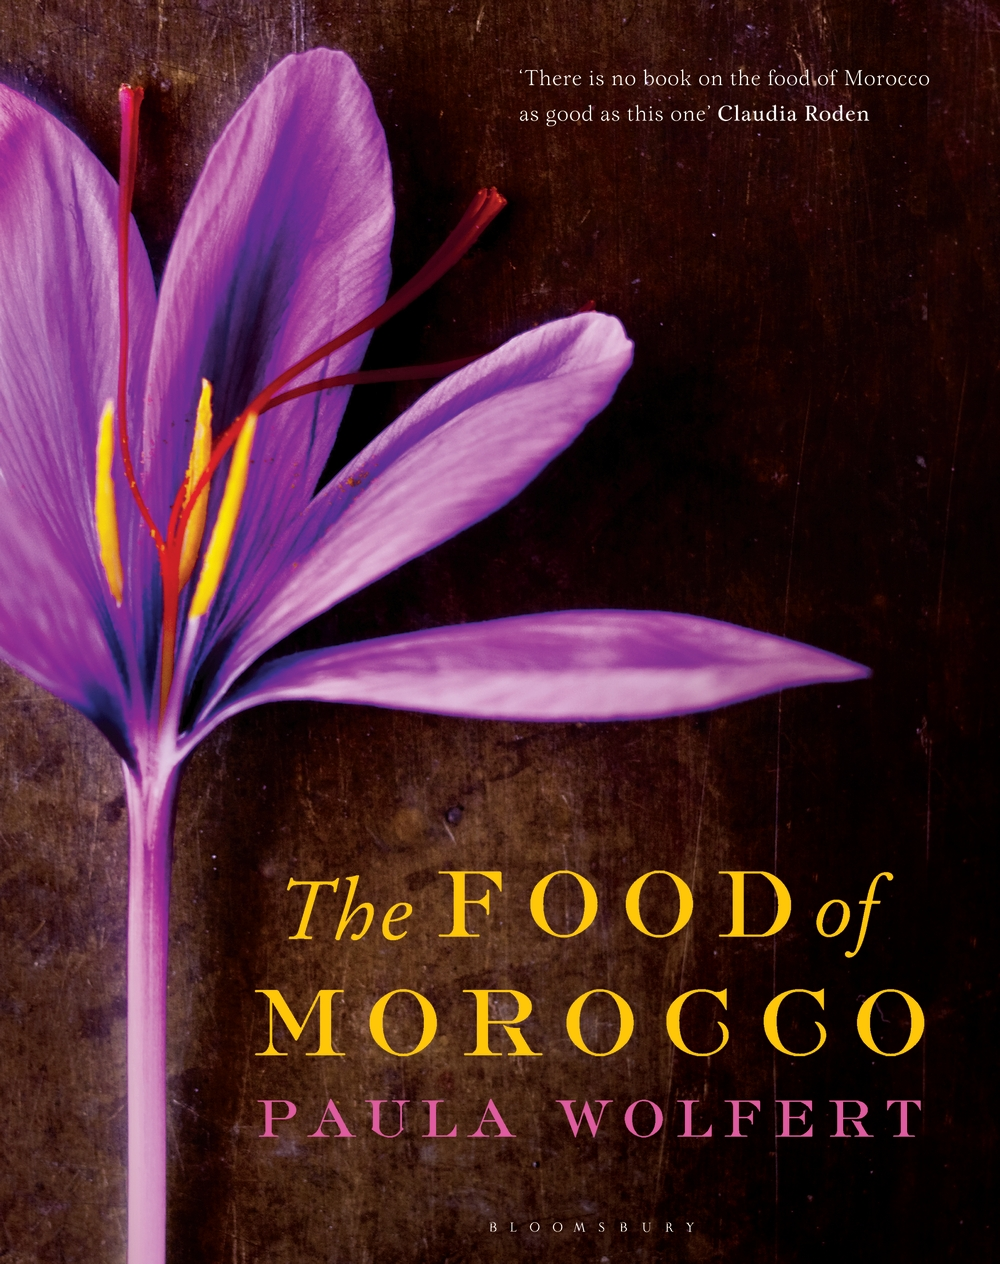 food of Morocco by paula wolfert